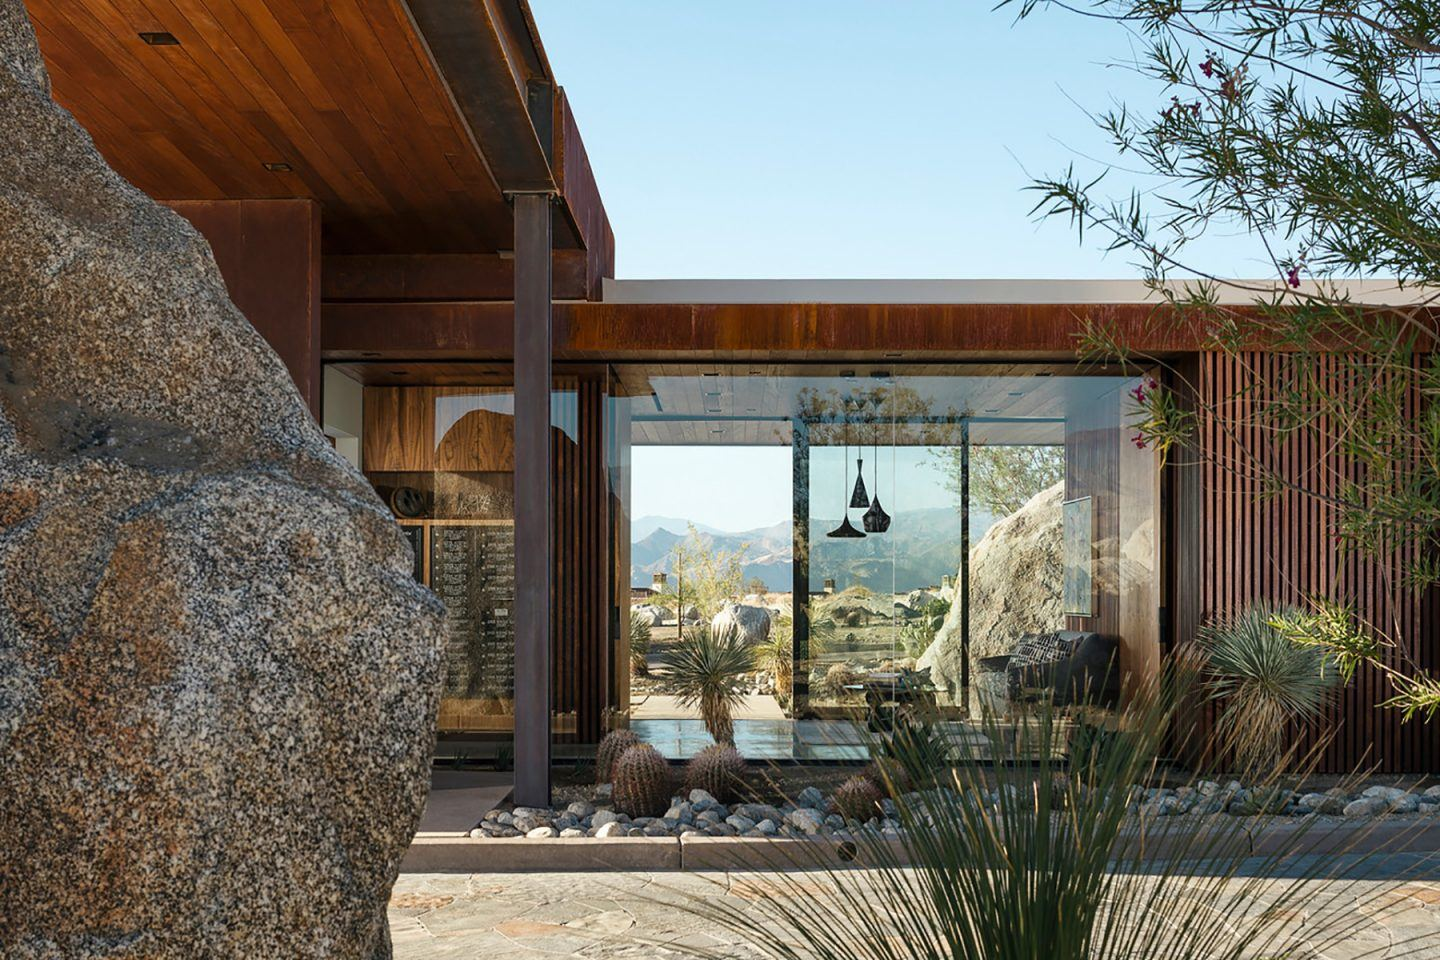 IGNANT-Architecture-Sean-Lockyer-Desert-Palisades-11